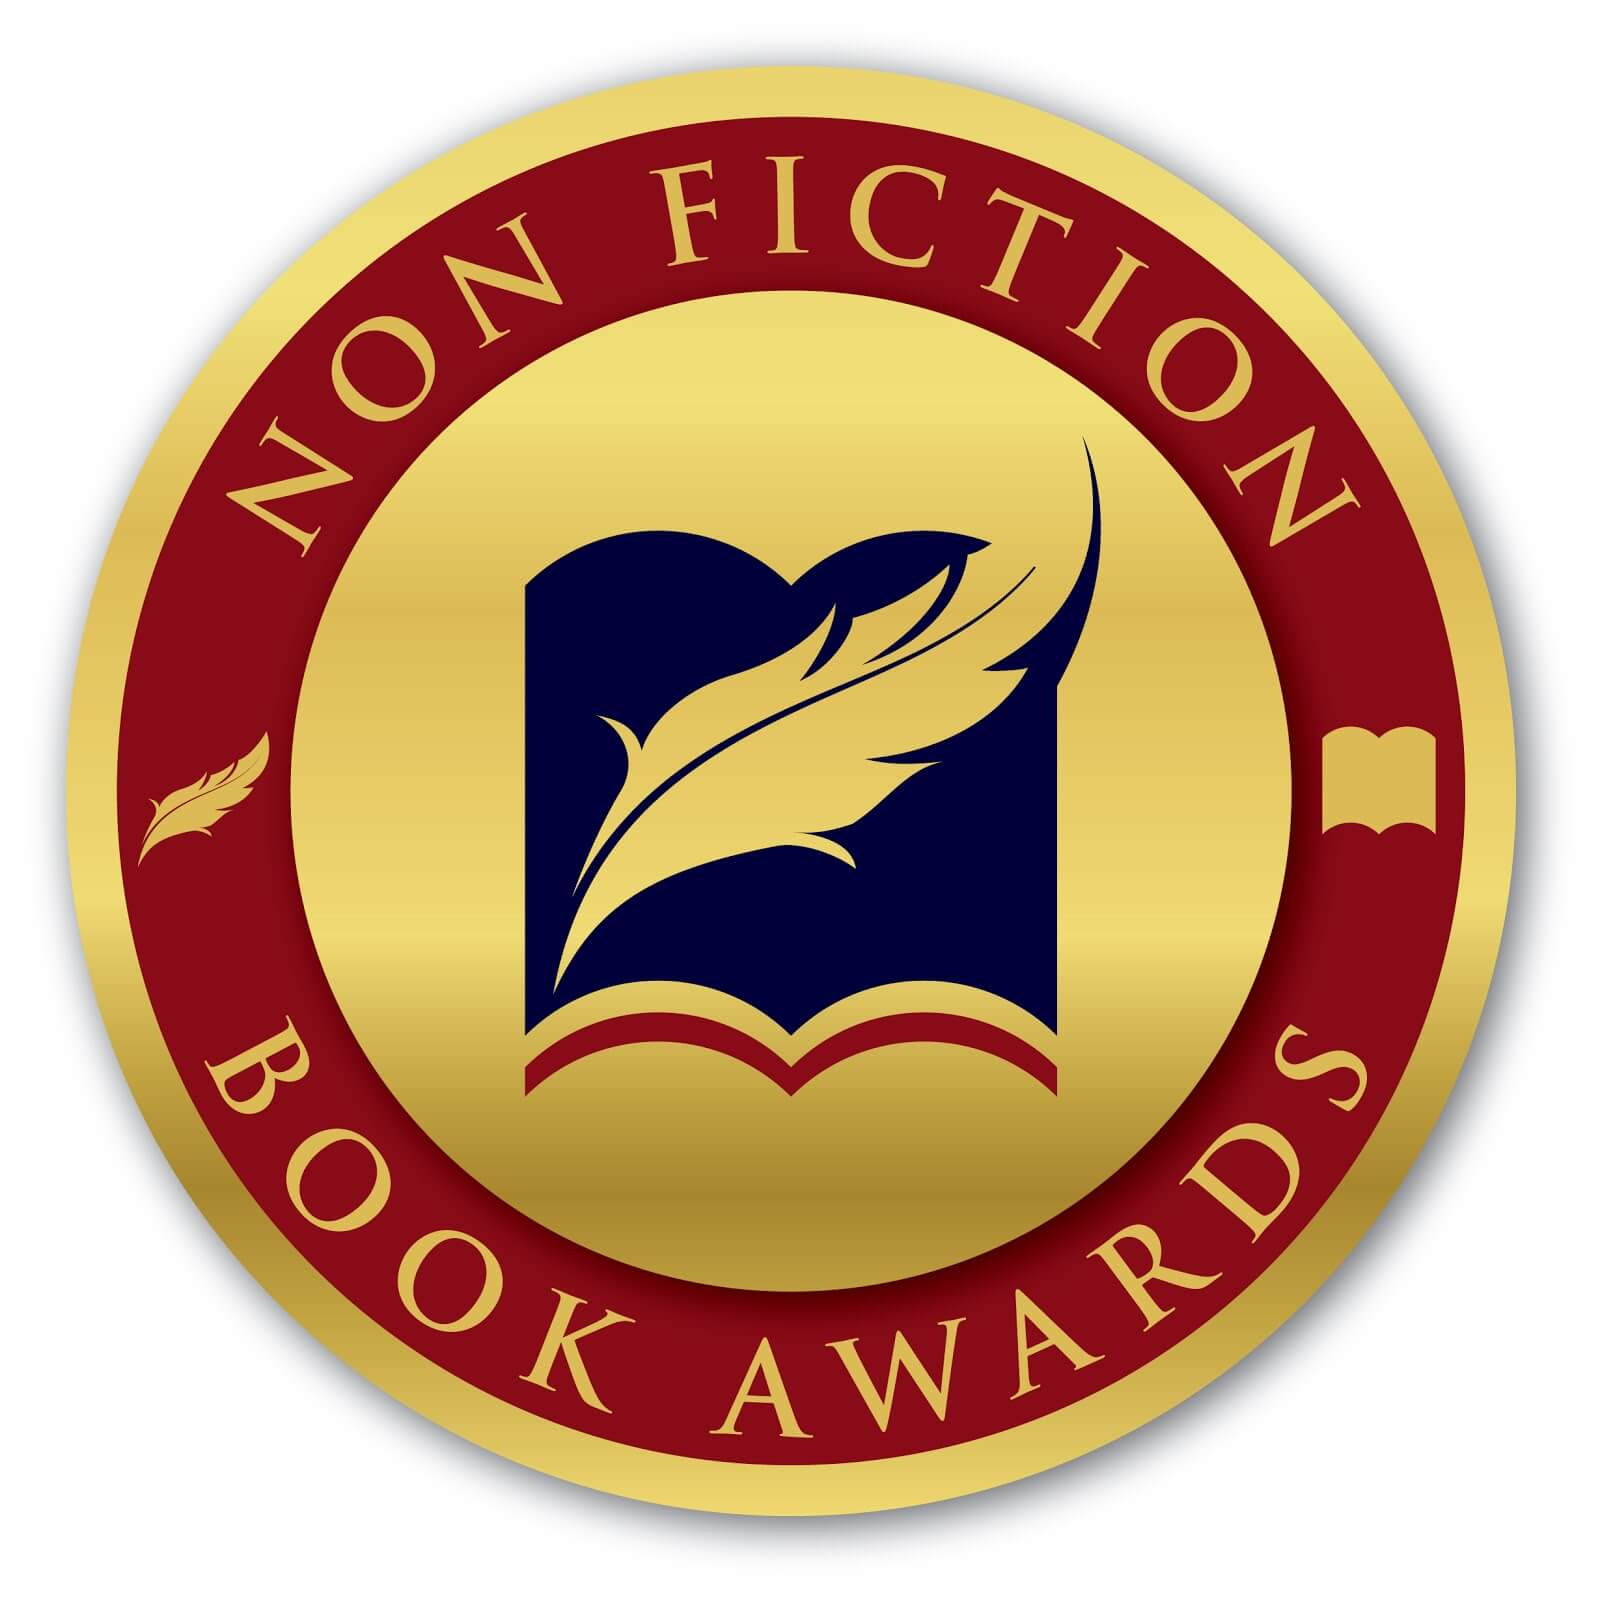 Non-fiction literary awards